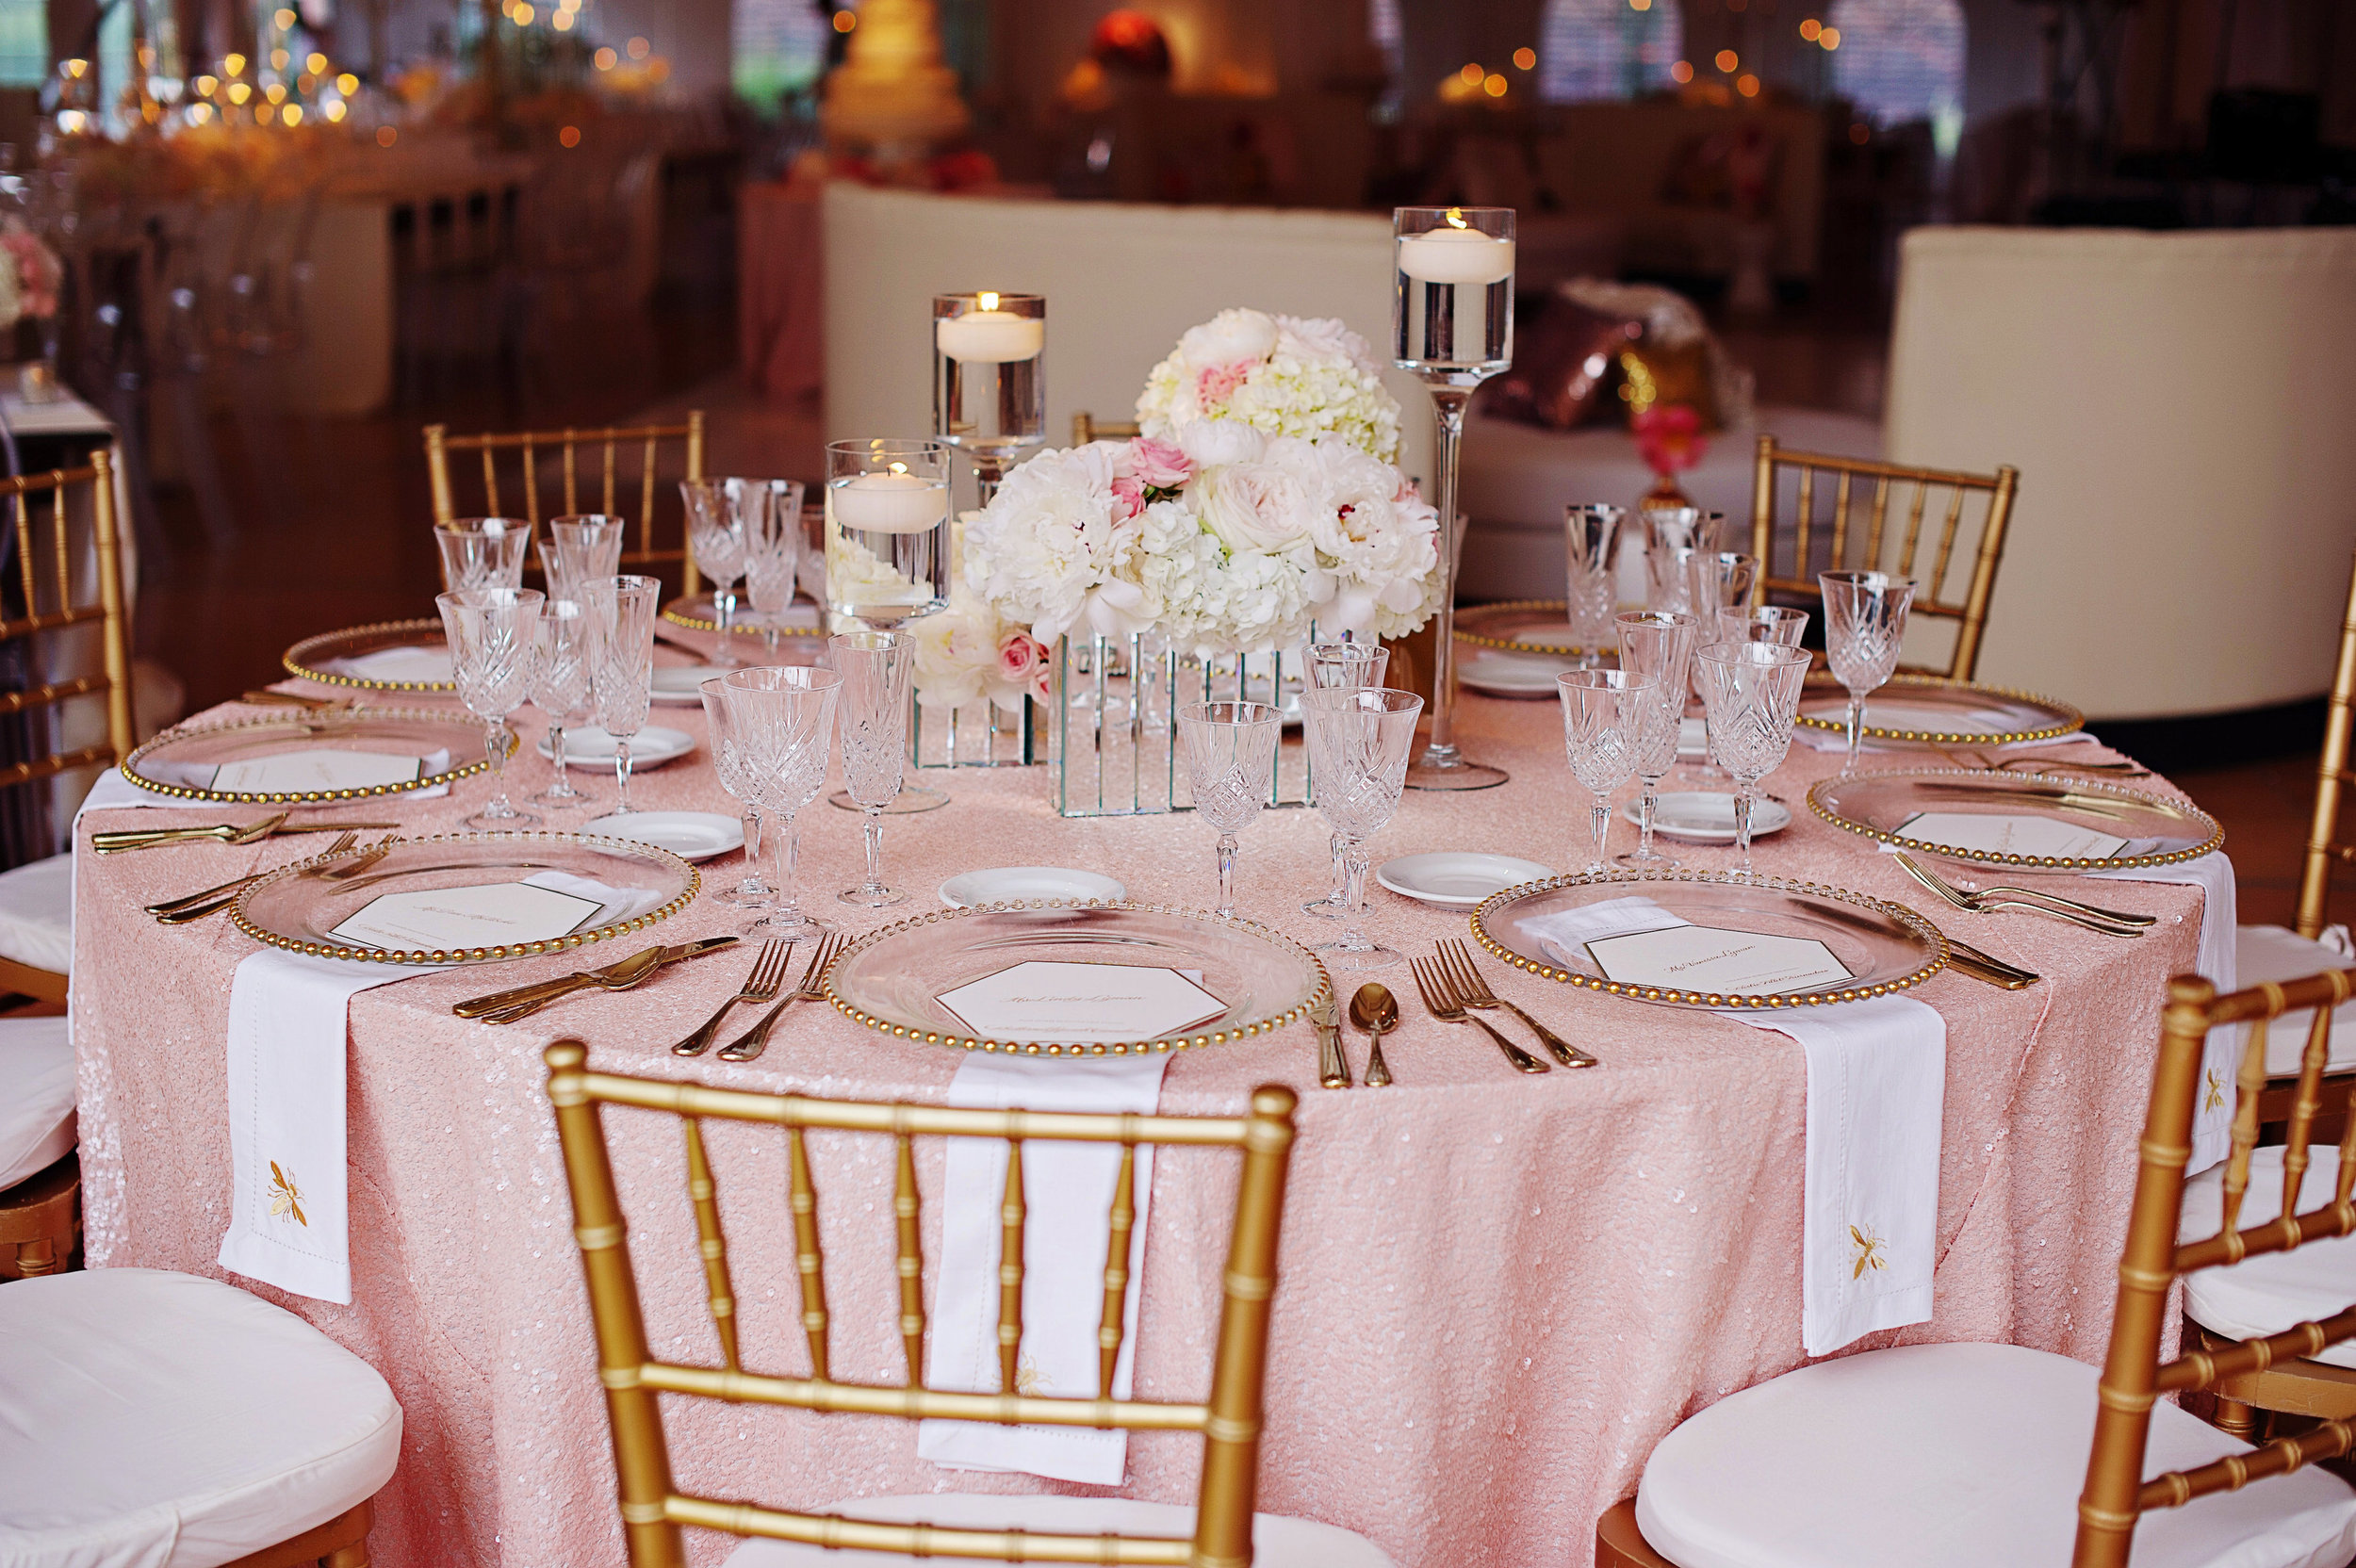 Table setting with pink linens for bee and honeycomb motif stationery for a Cincinnati Wedding at Pinecroft Estate.